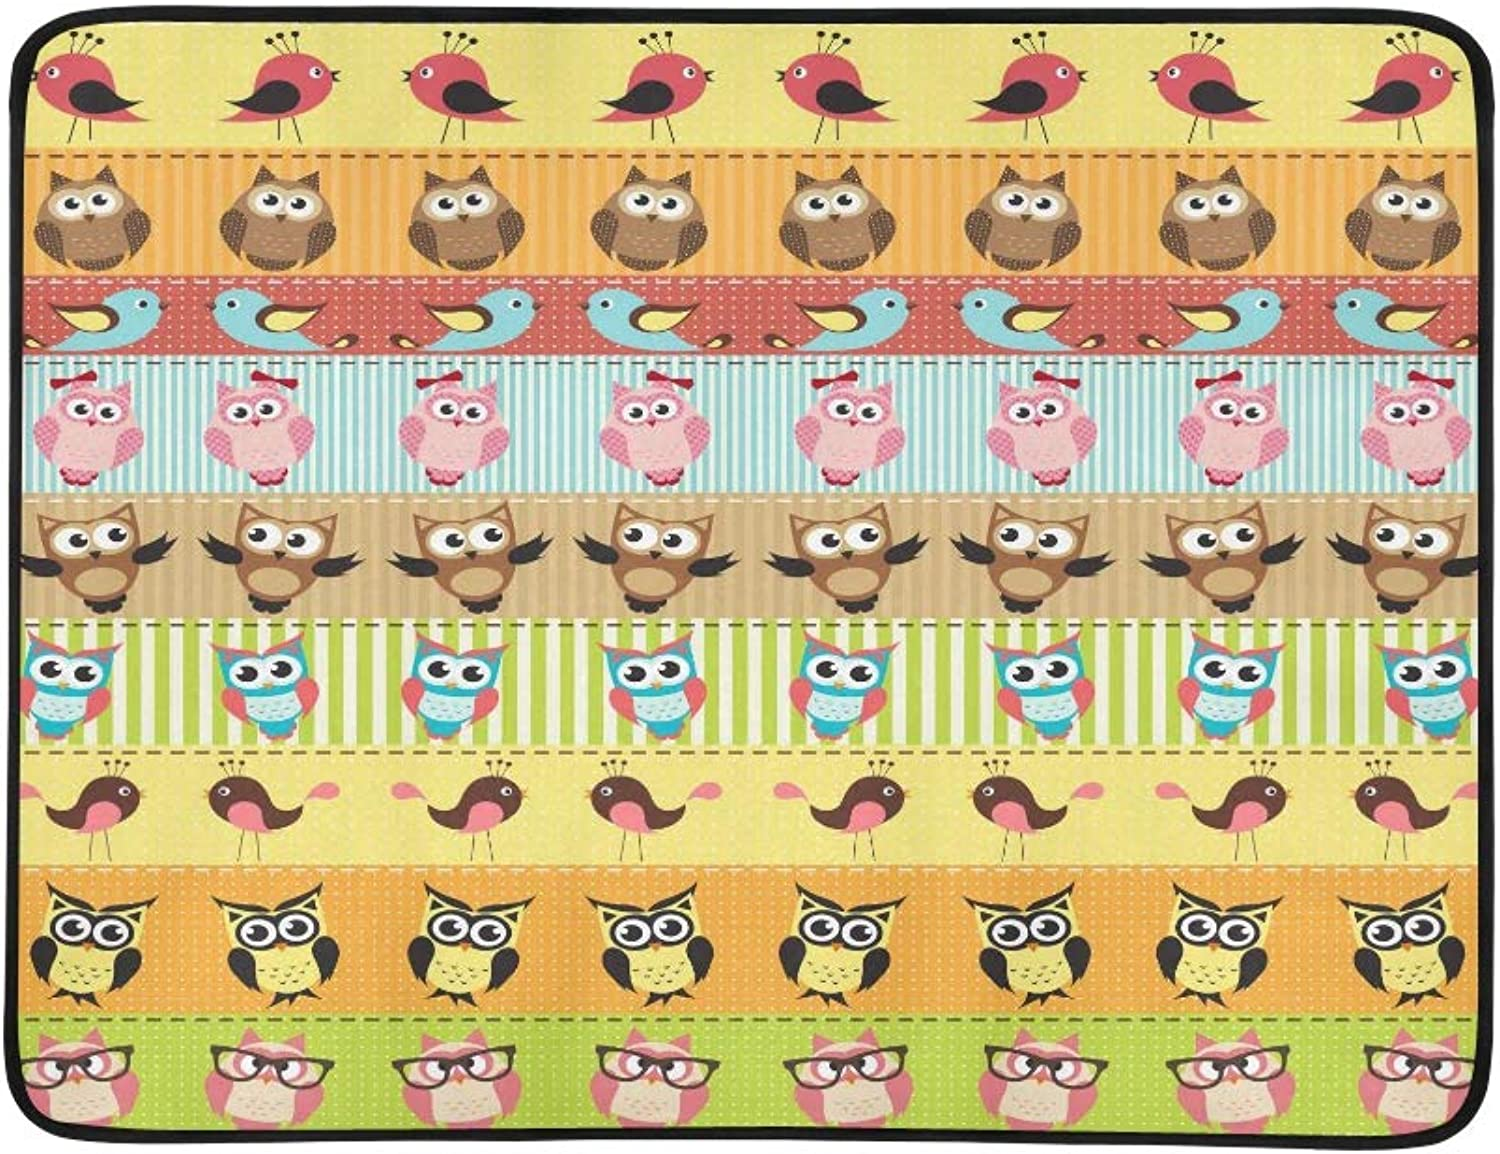 Cute Owl Bird Cartoon colorful Stripe Pattern Portable and Foldable Blanket Mat 60x78 Inch Handy Mat for Camping Picnic Beach Indoor Outdoor Travel